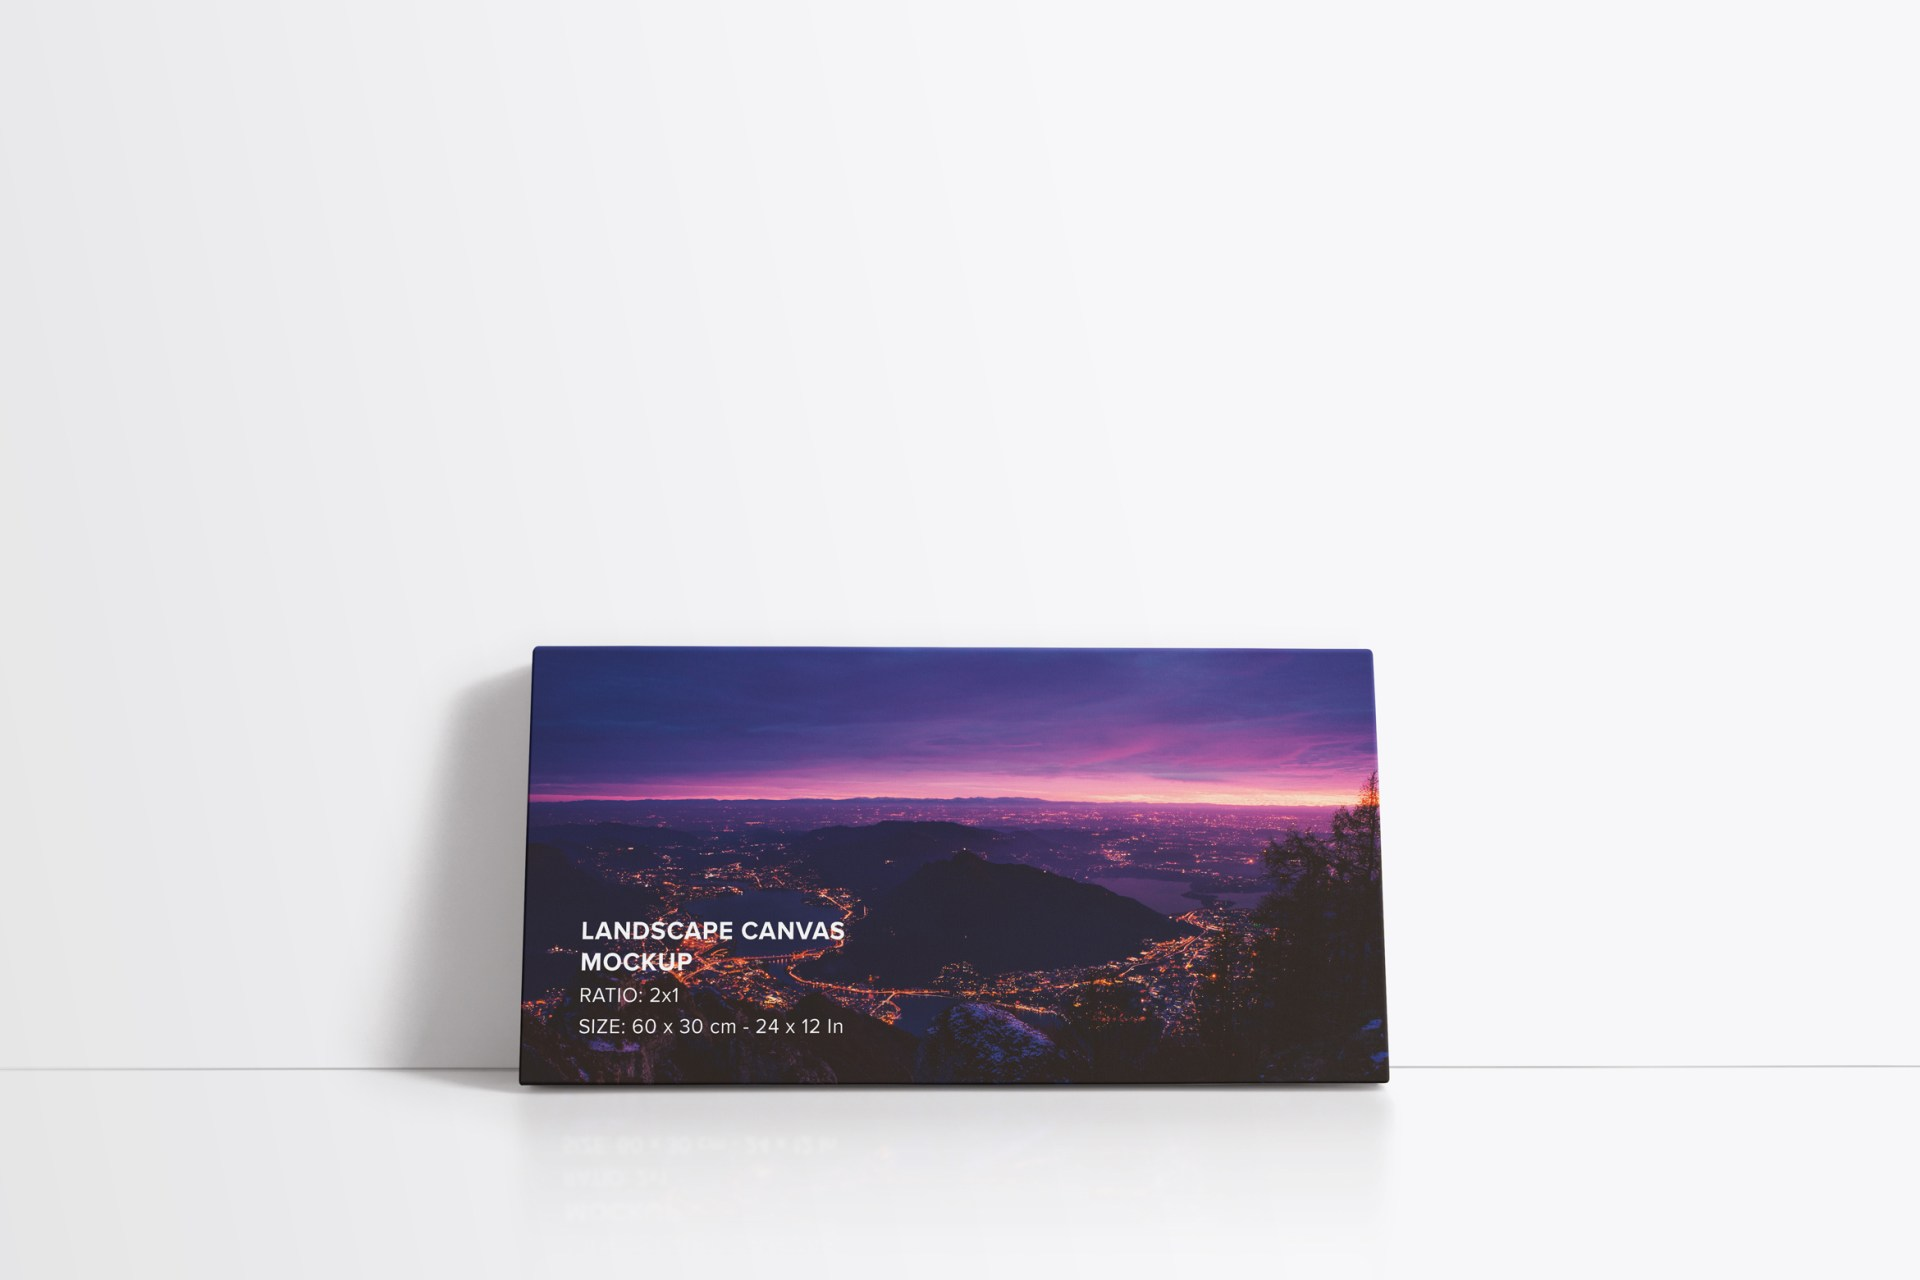 2x1 Leaning on Wall Landscape Canvas Mockup